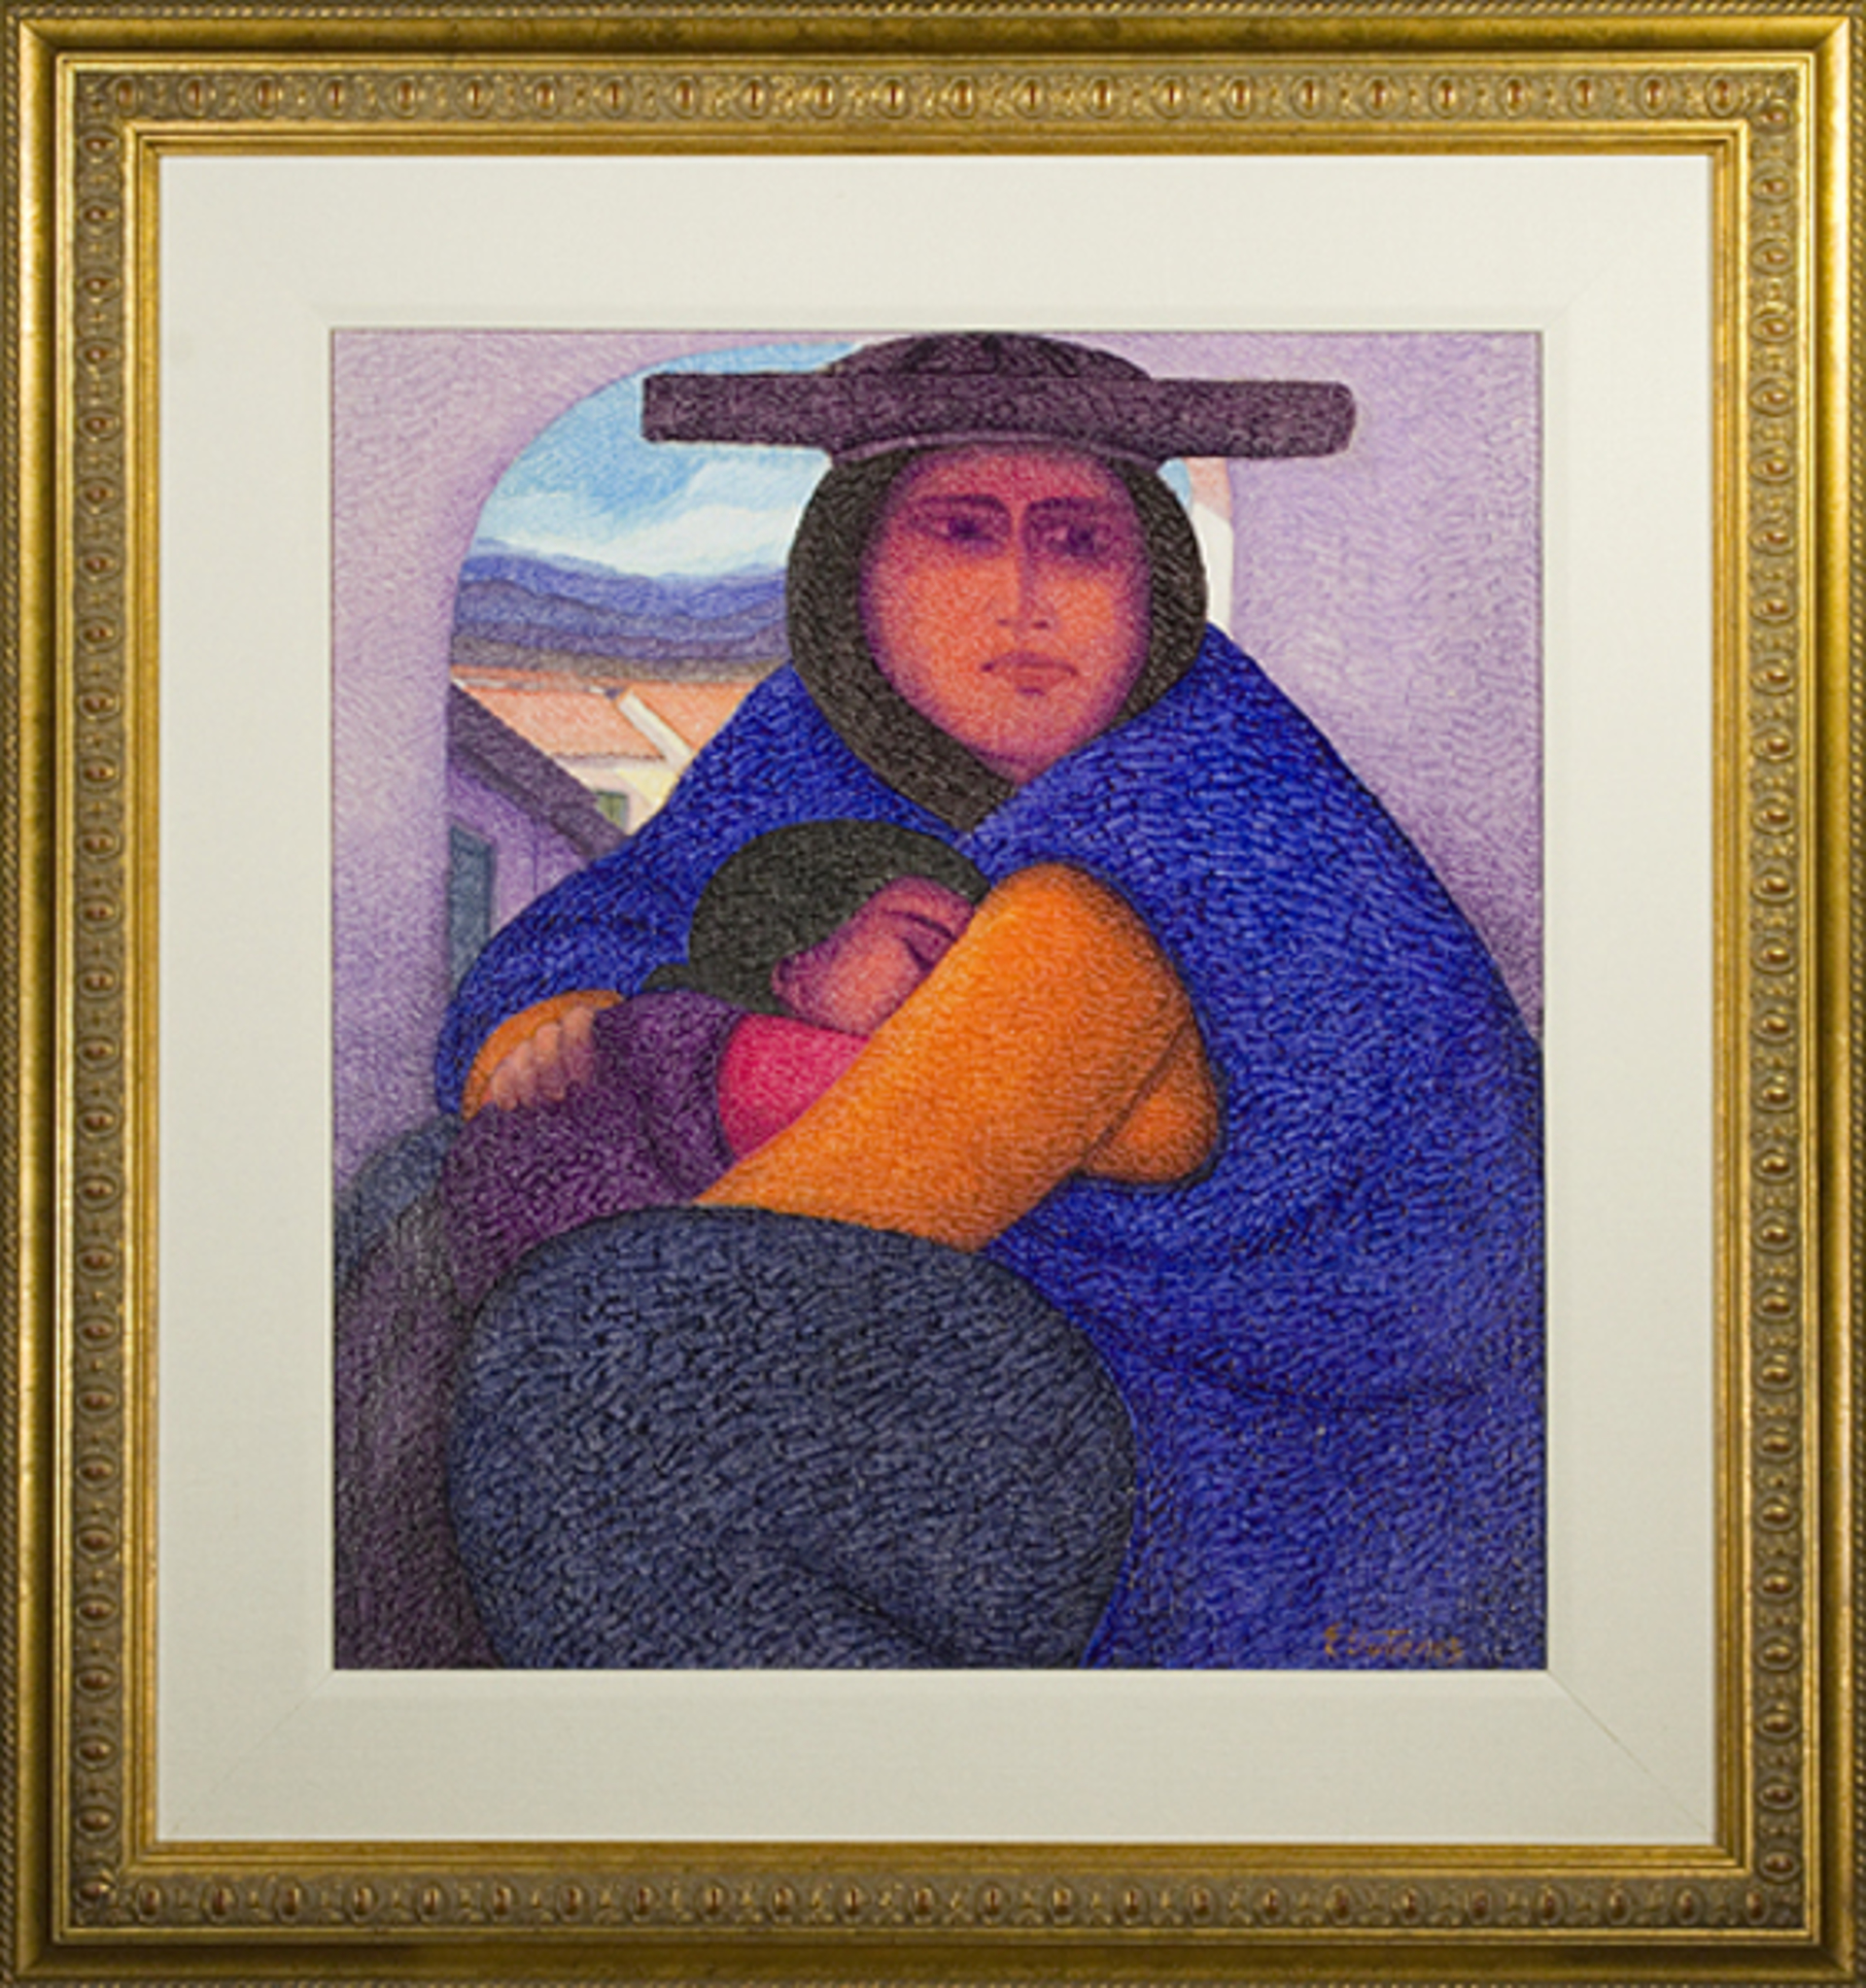 Madre Joven (Young Mother) by Ernesto Gutierrez